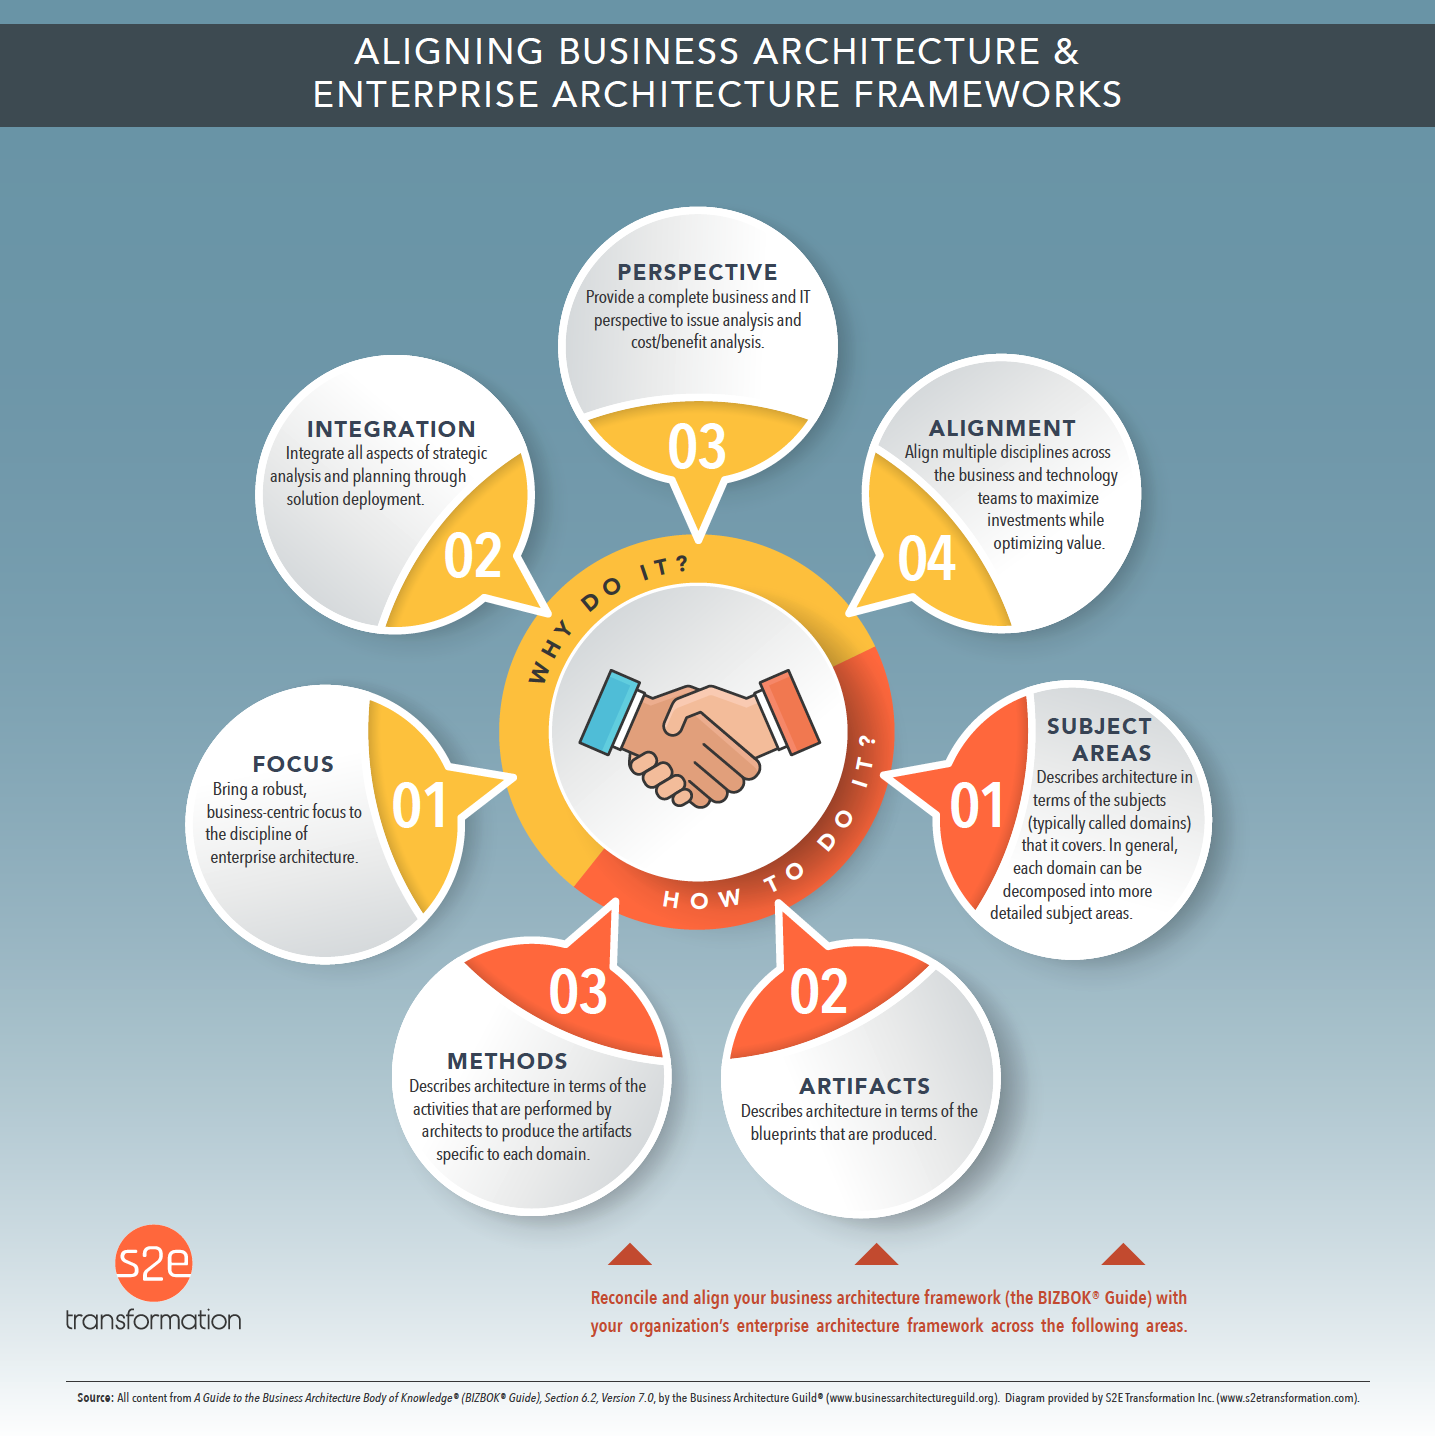 Aligning Business Architecture and Enterprise Architecture Frameworks